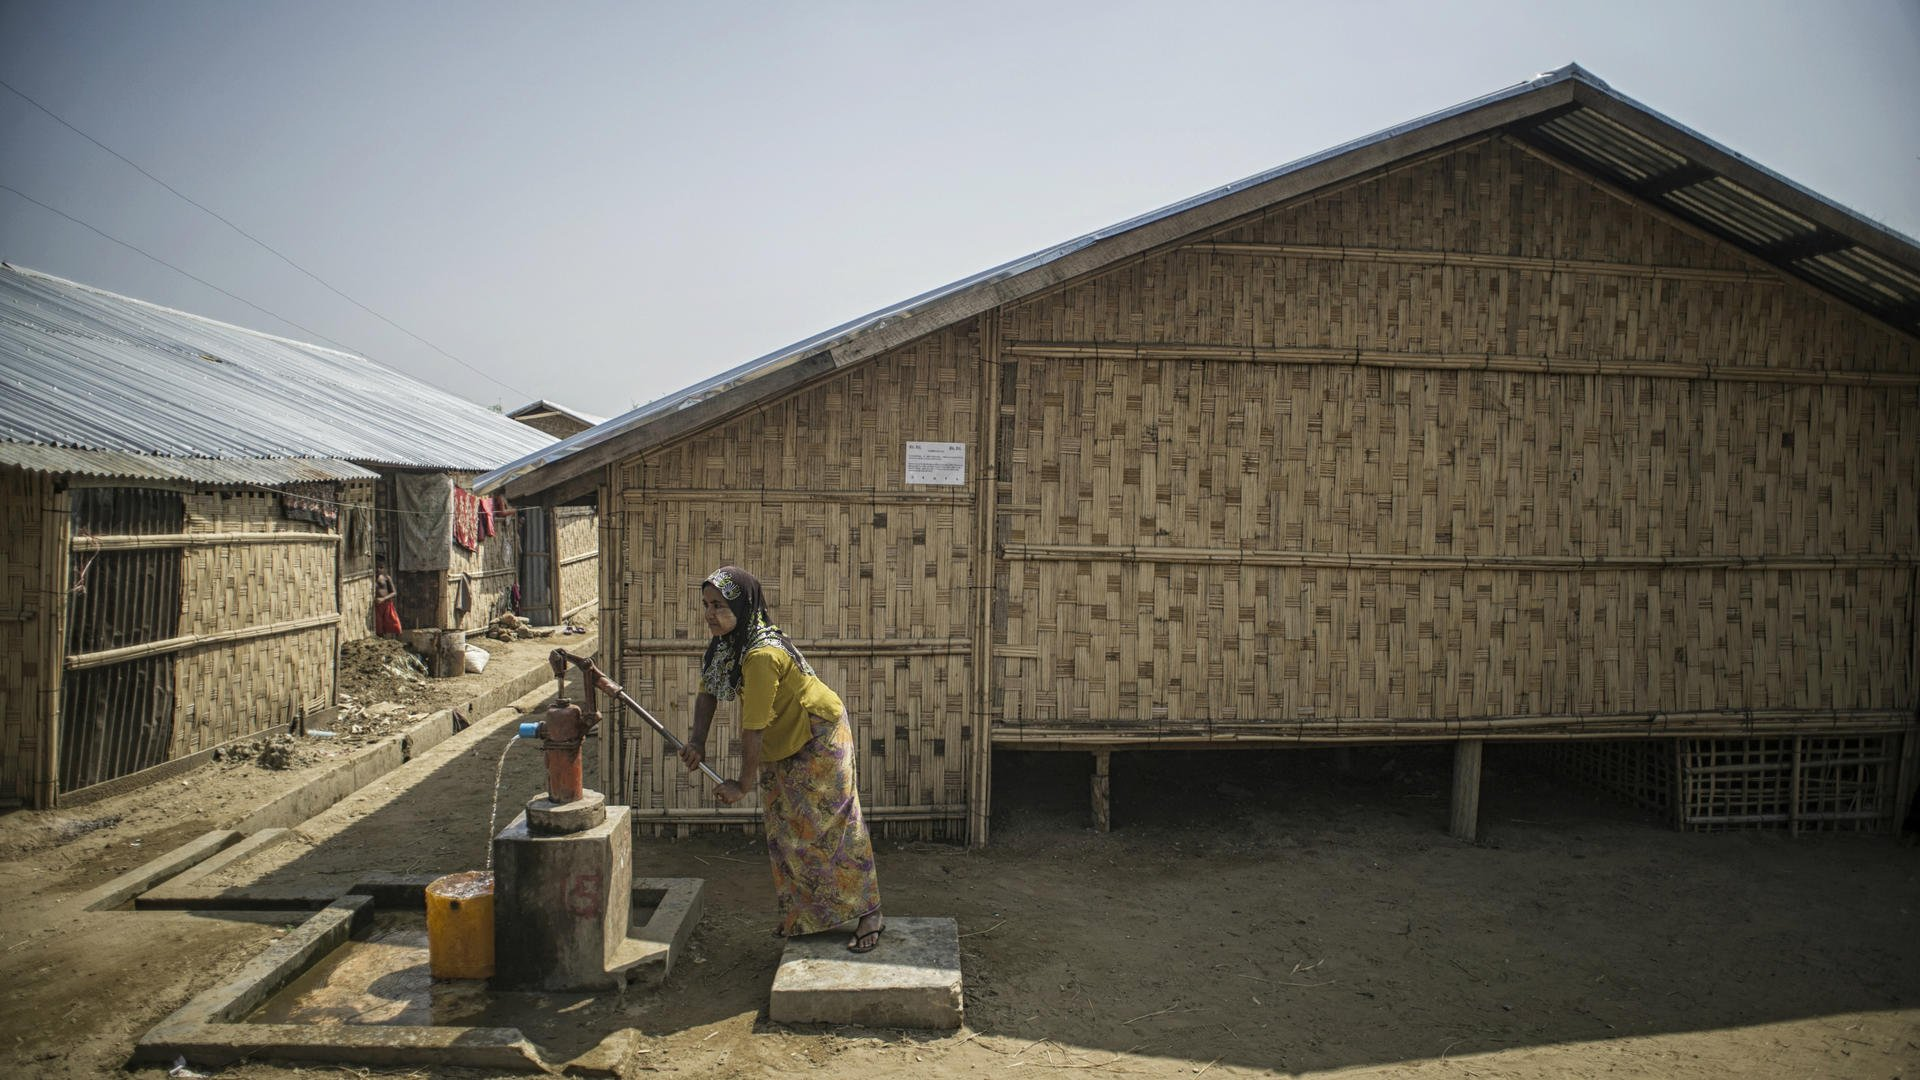 A Rohingya women pumps water outside a longhouse in Myanmar